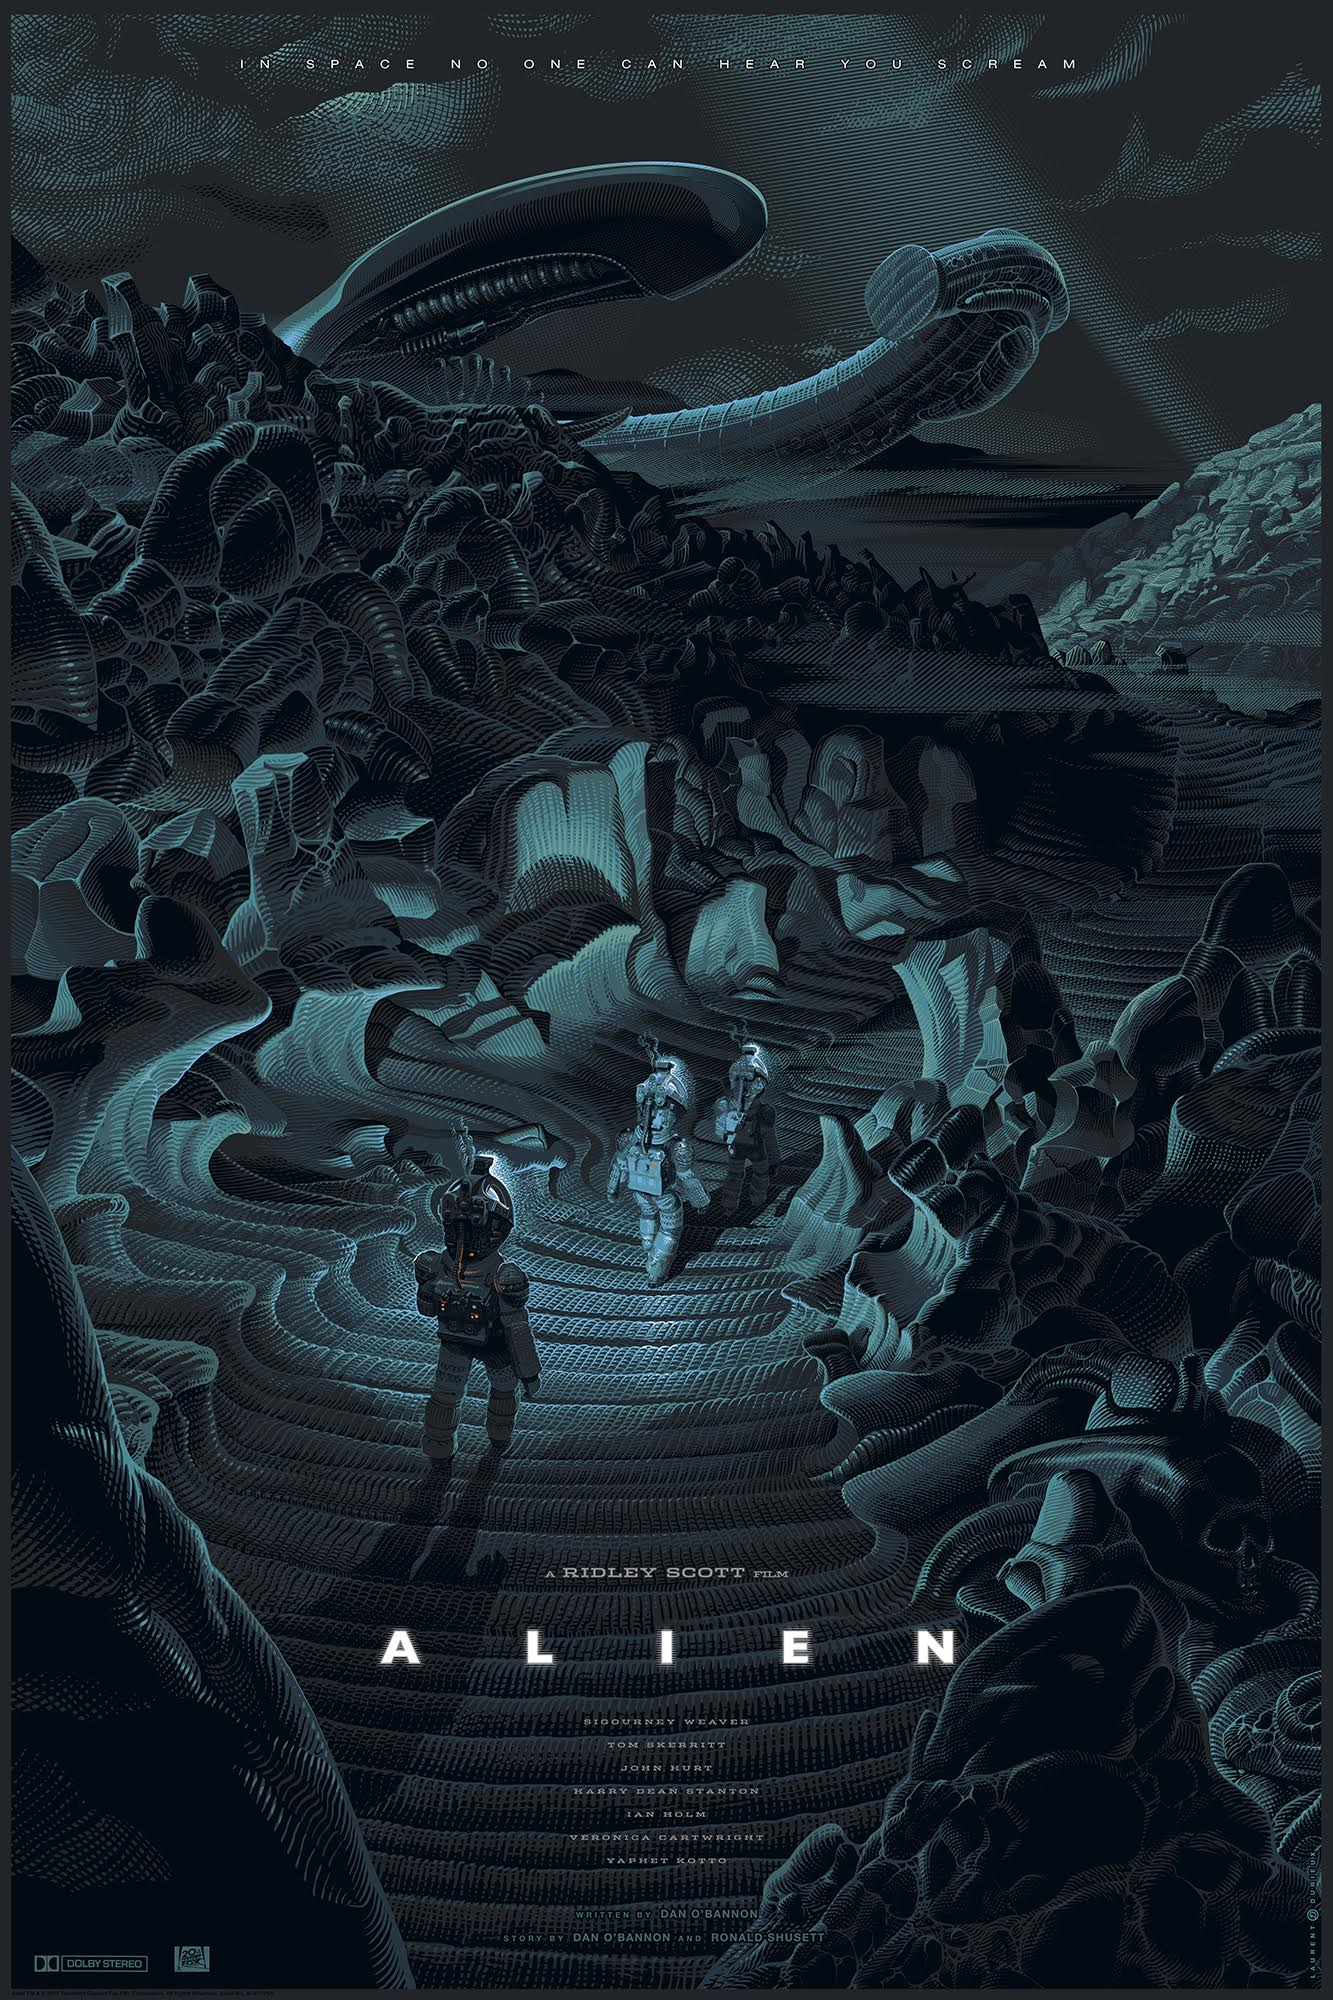 """Alien"" by Laurent Durieux.  24"" x 36"" 9-color Screenprint w/ metallic inks.  Ed of 225.  $85 (variant)"